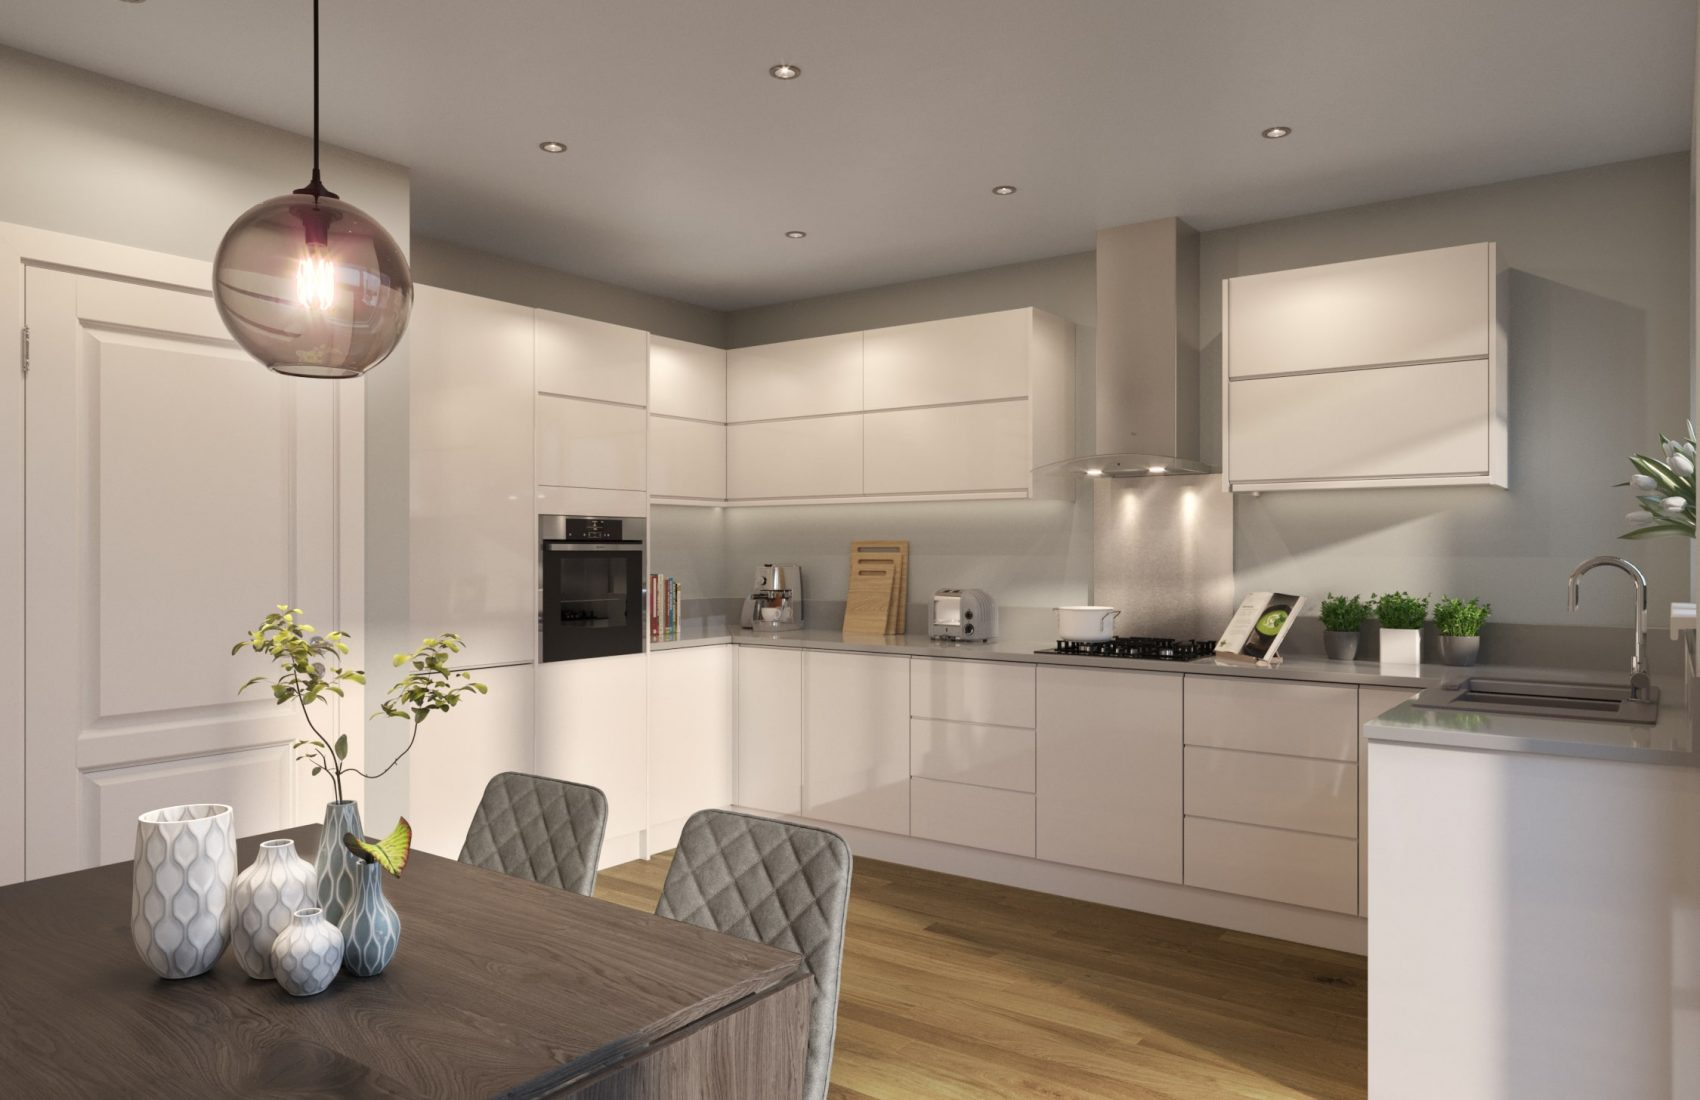 kbb luxury kitchen visualisations uk studio-min